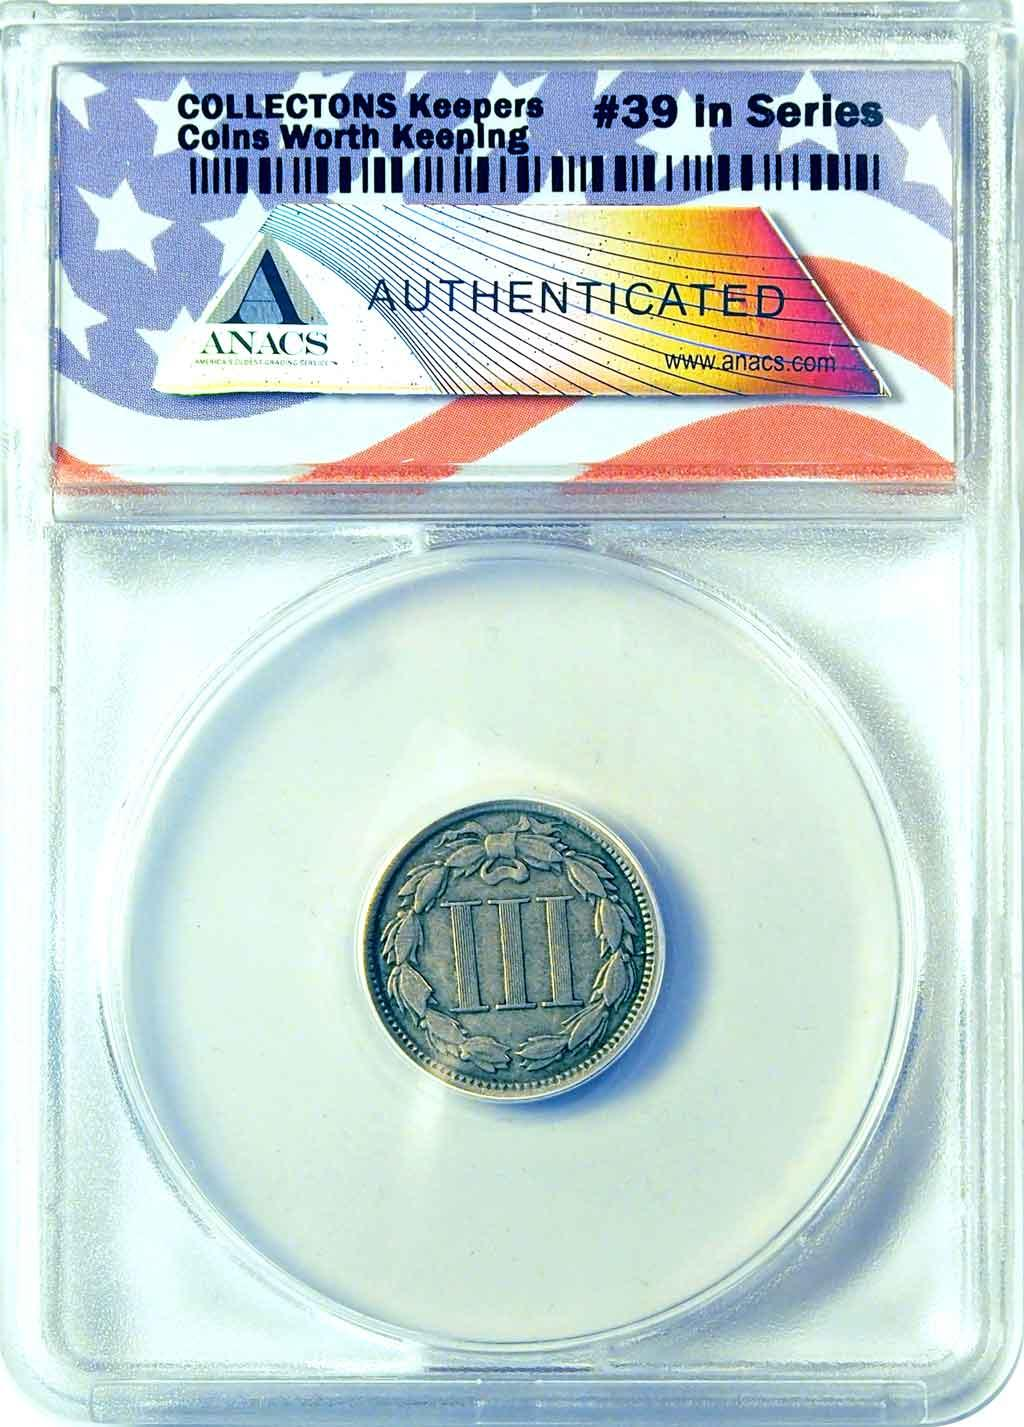 CollecTons Keepers #39: 1865 Three-Cent Piece Certified in Exclusive ANACS Holder